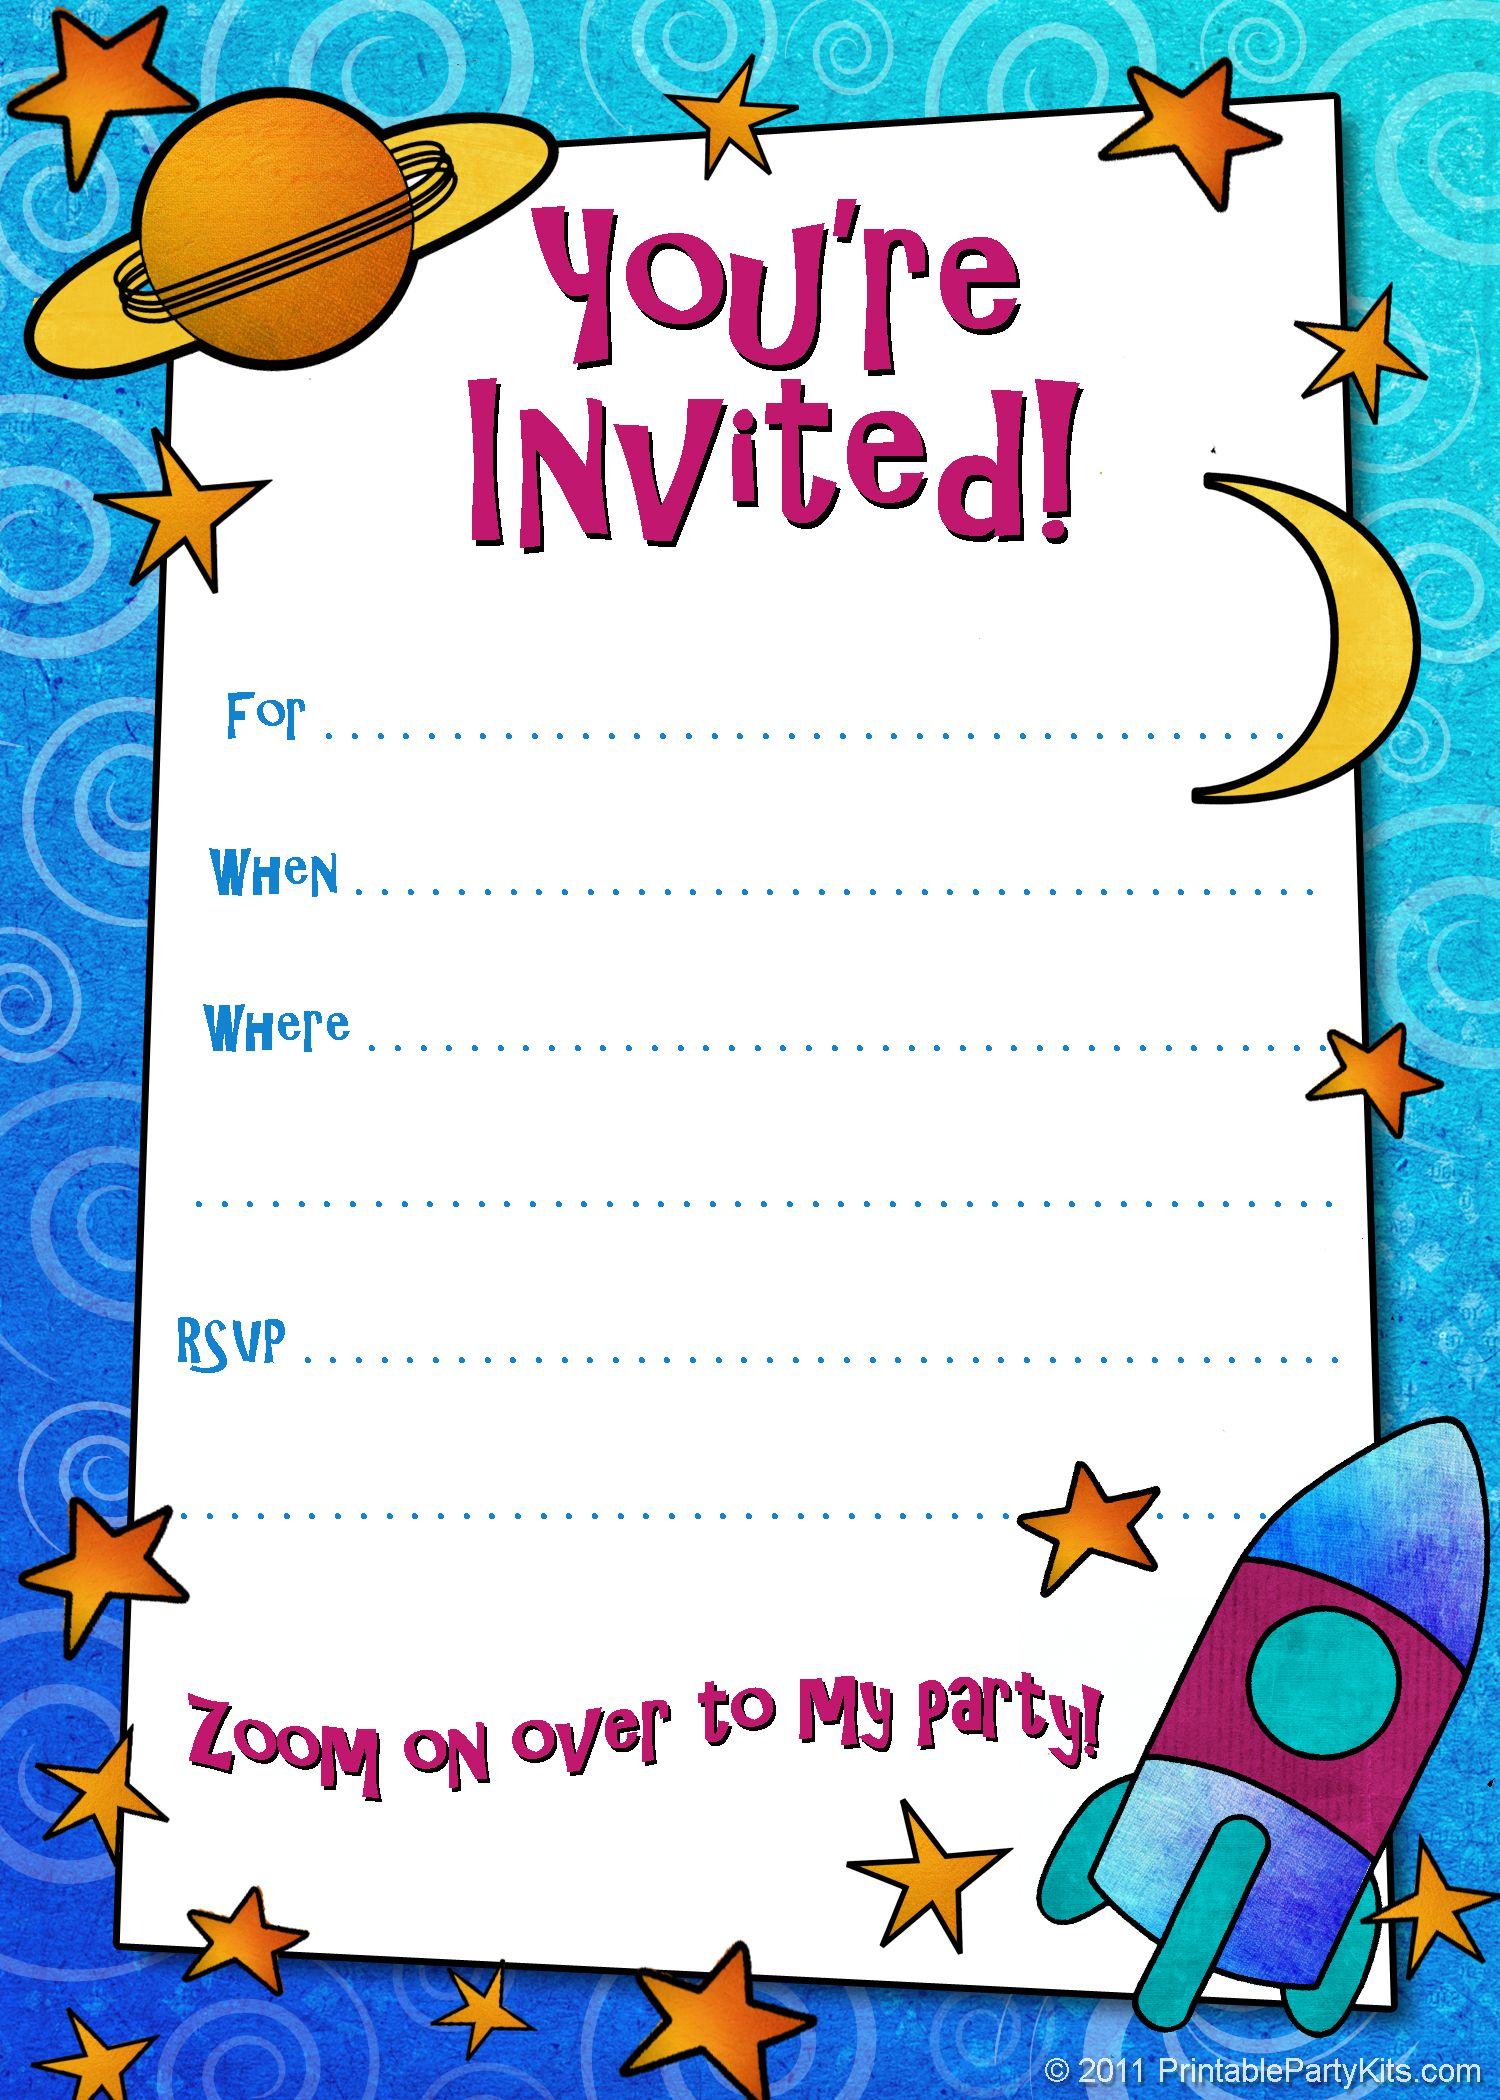 Free Printable Boys Birthday Party Invitations Boy Birthday - Birthday party invitation cards to print